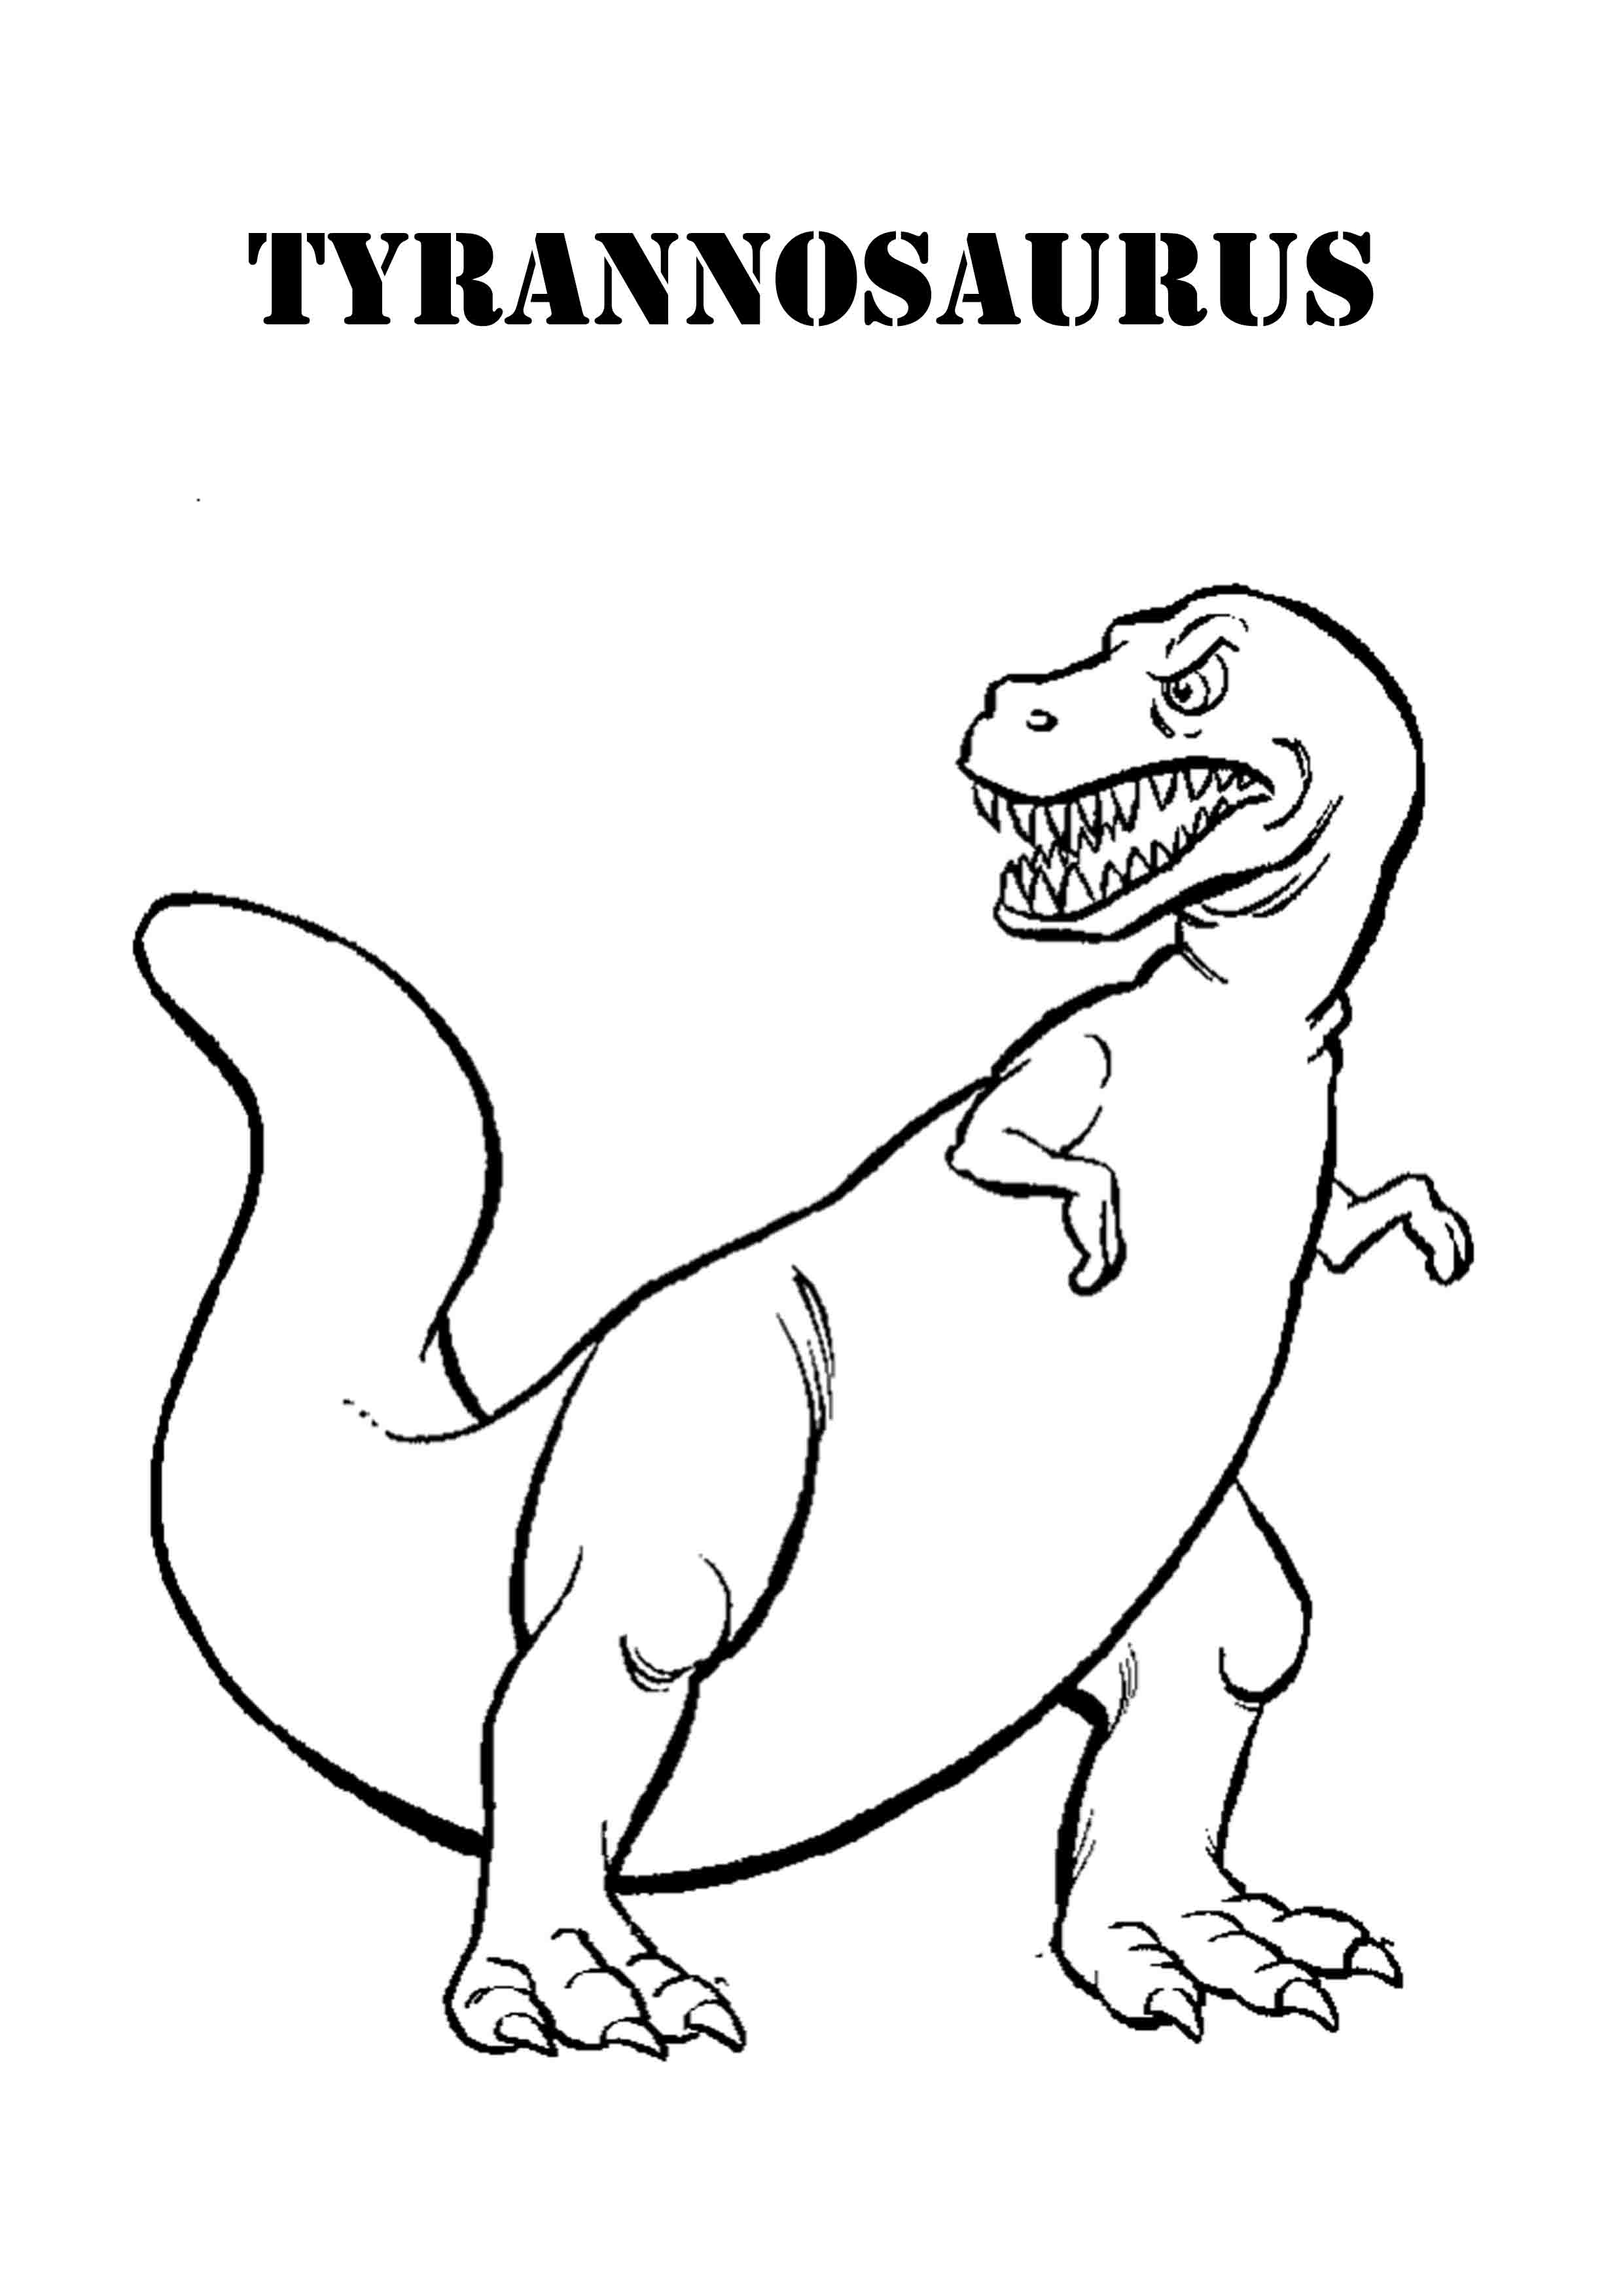 Scary Dinosaur Coloring Pages Scary Dinosaur Coloring Pages Bestappsforkids